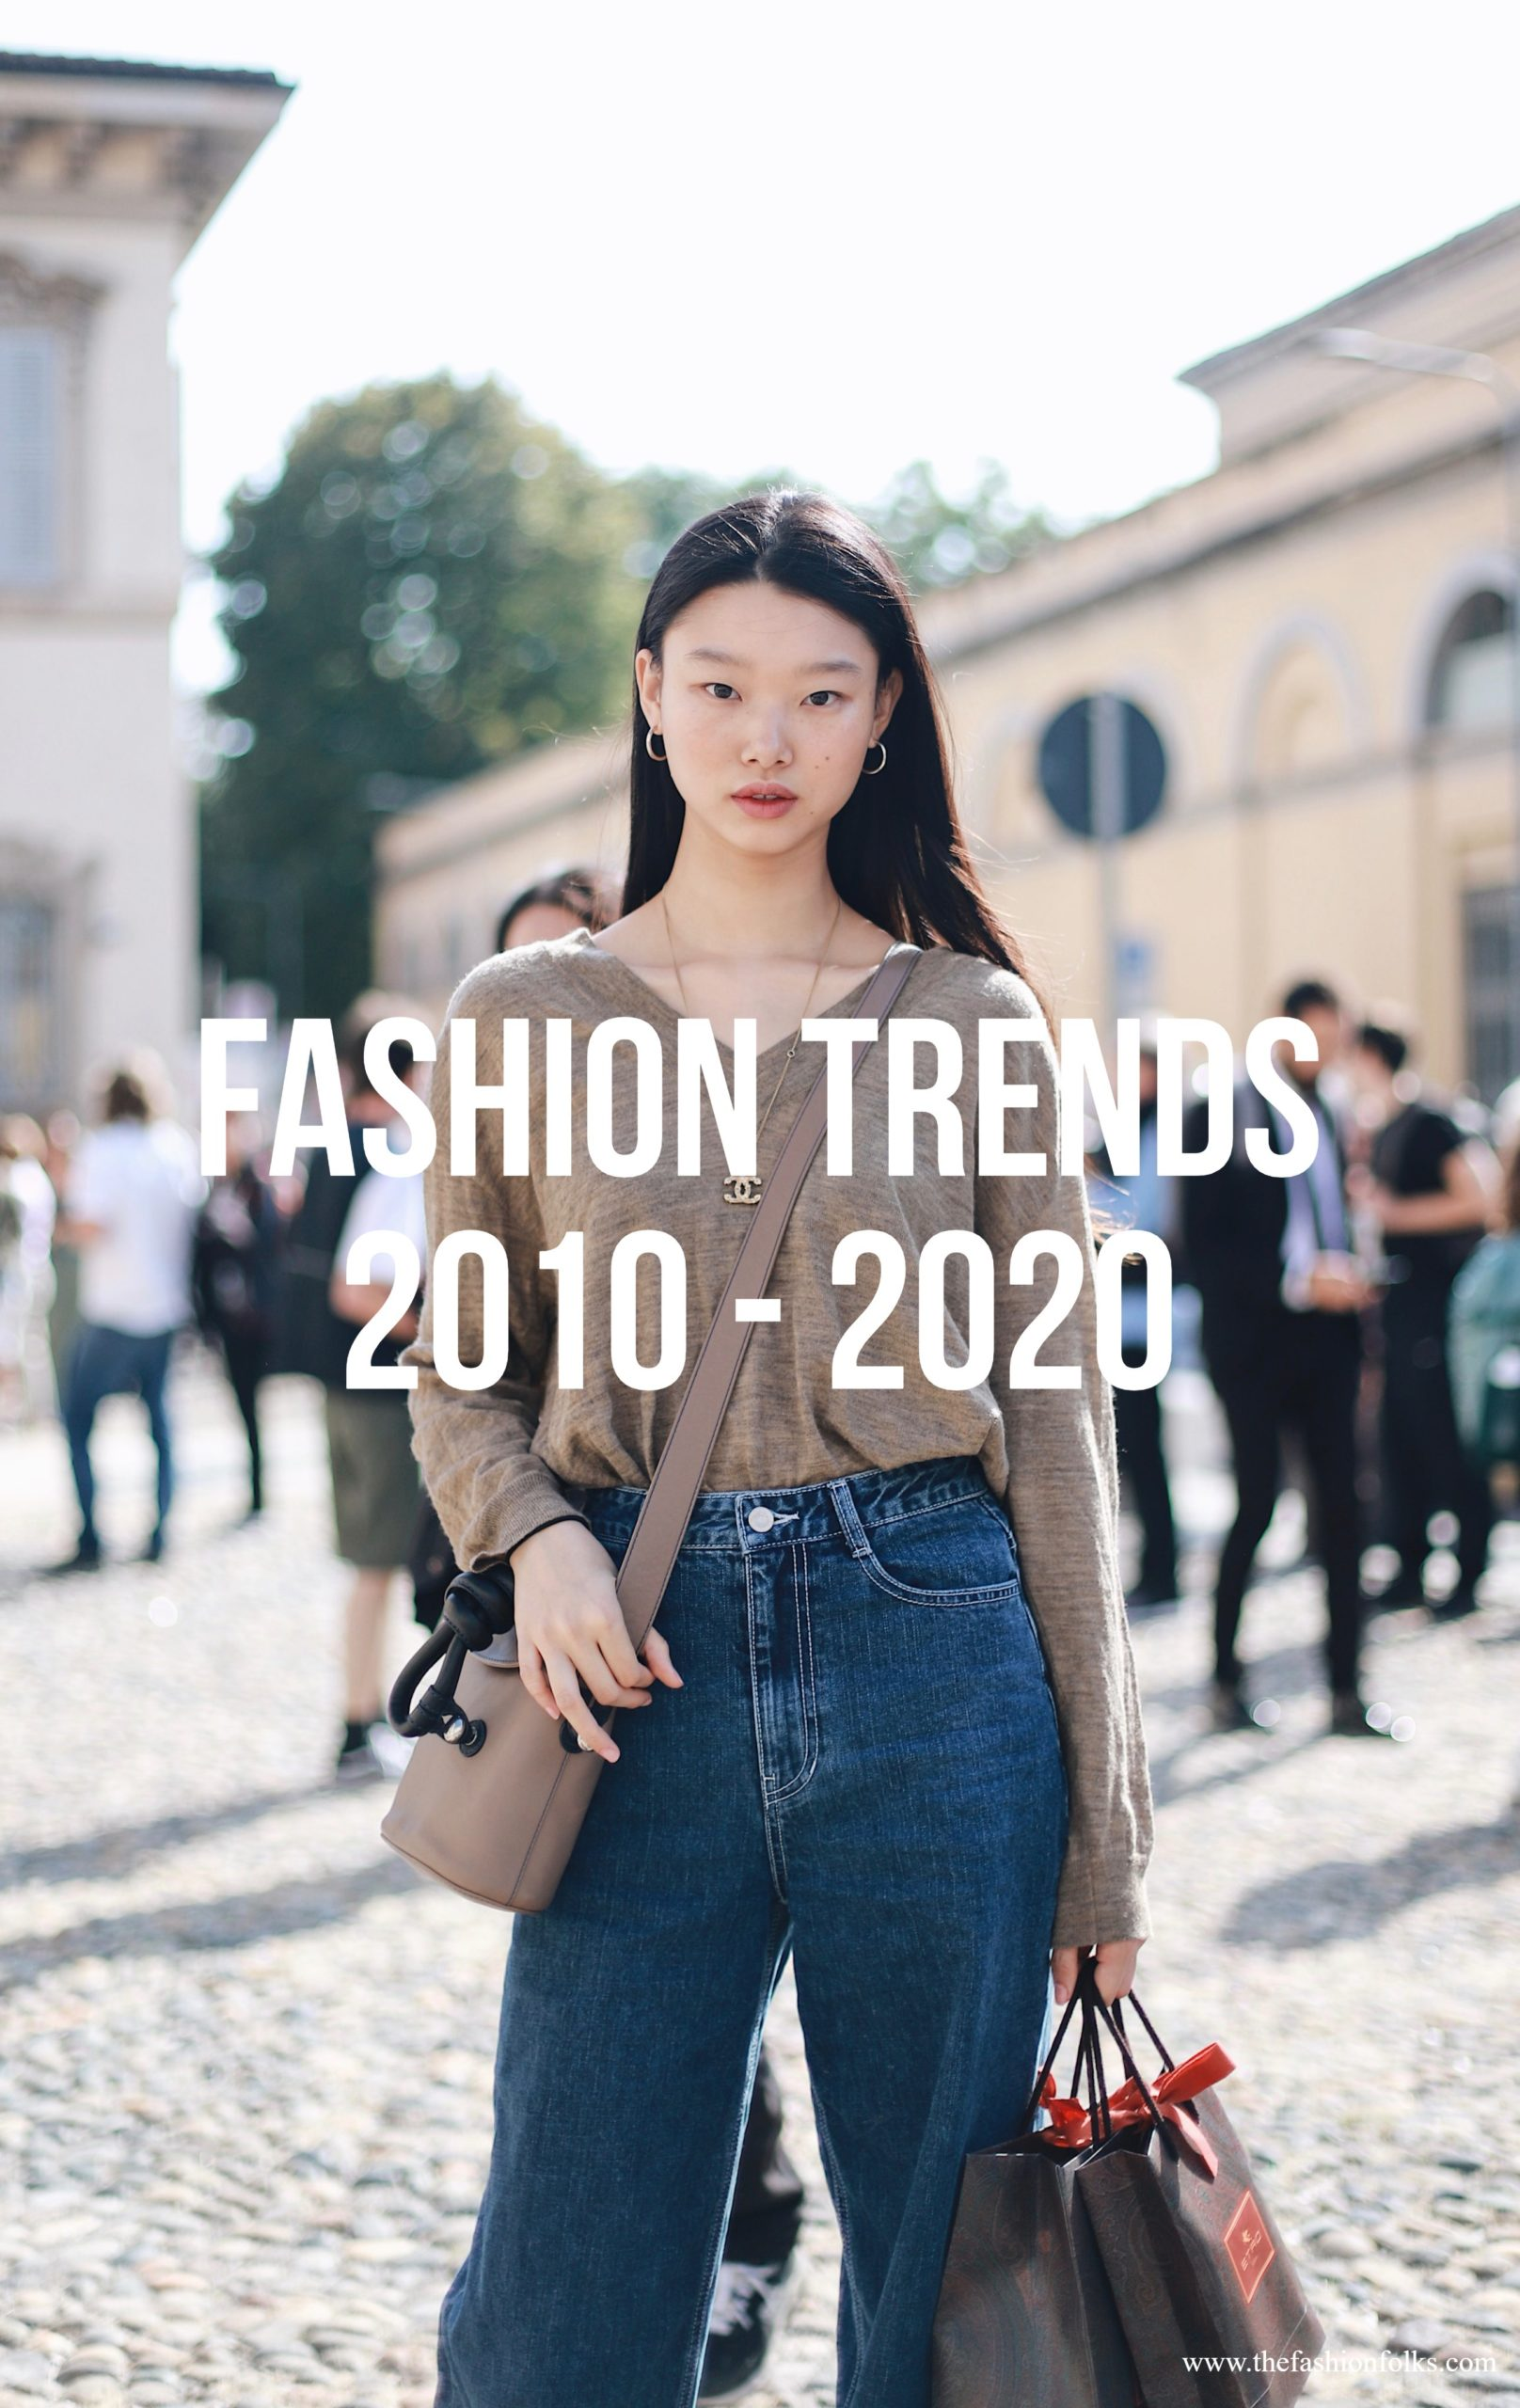 Fashion and Beauty Trends 2010 - 2020